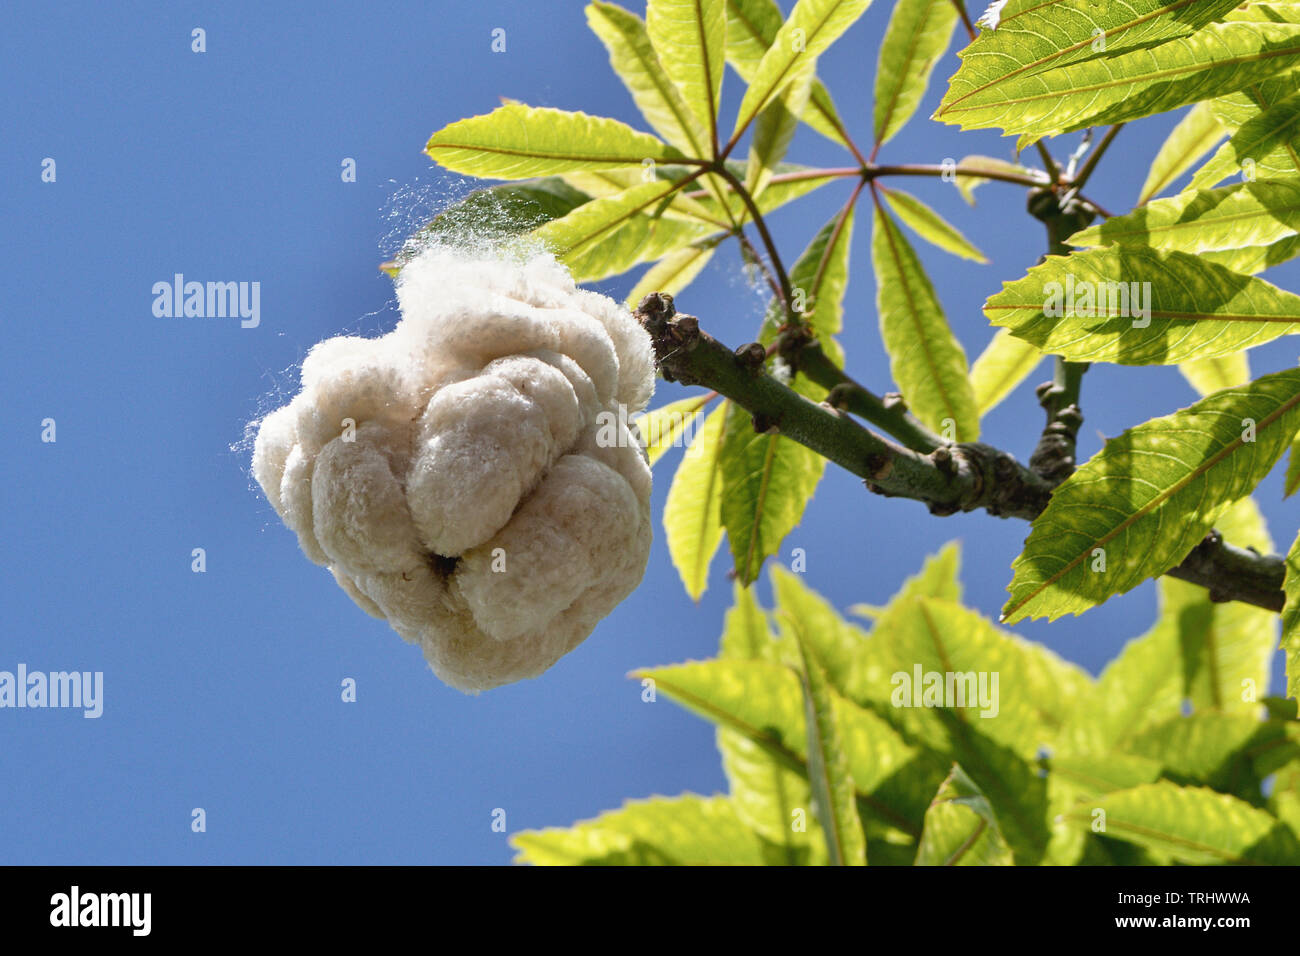 The burst seed pod of a kapok tree (Ceiba pendandra). He is the largest tree of the tropical rainforest. in thick balls the fiber, a synthetic cotton - Stock Image